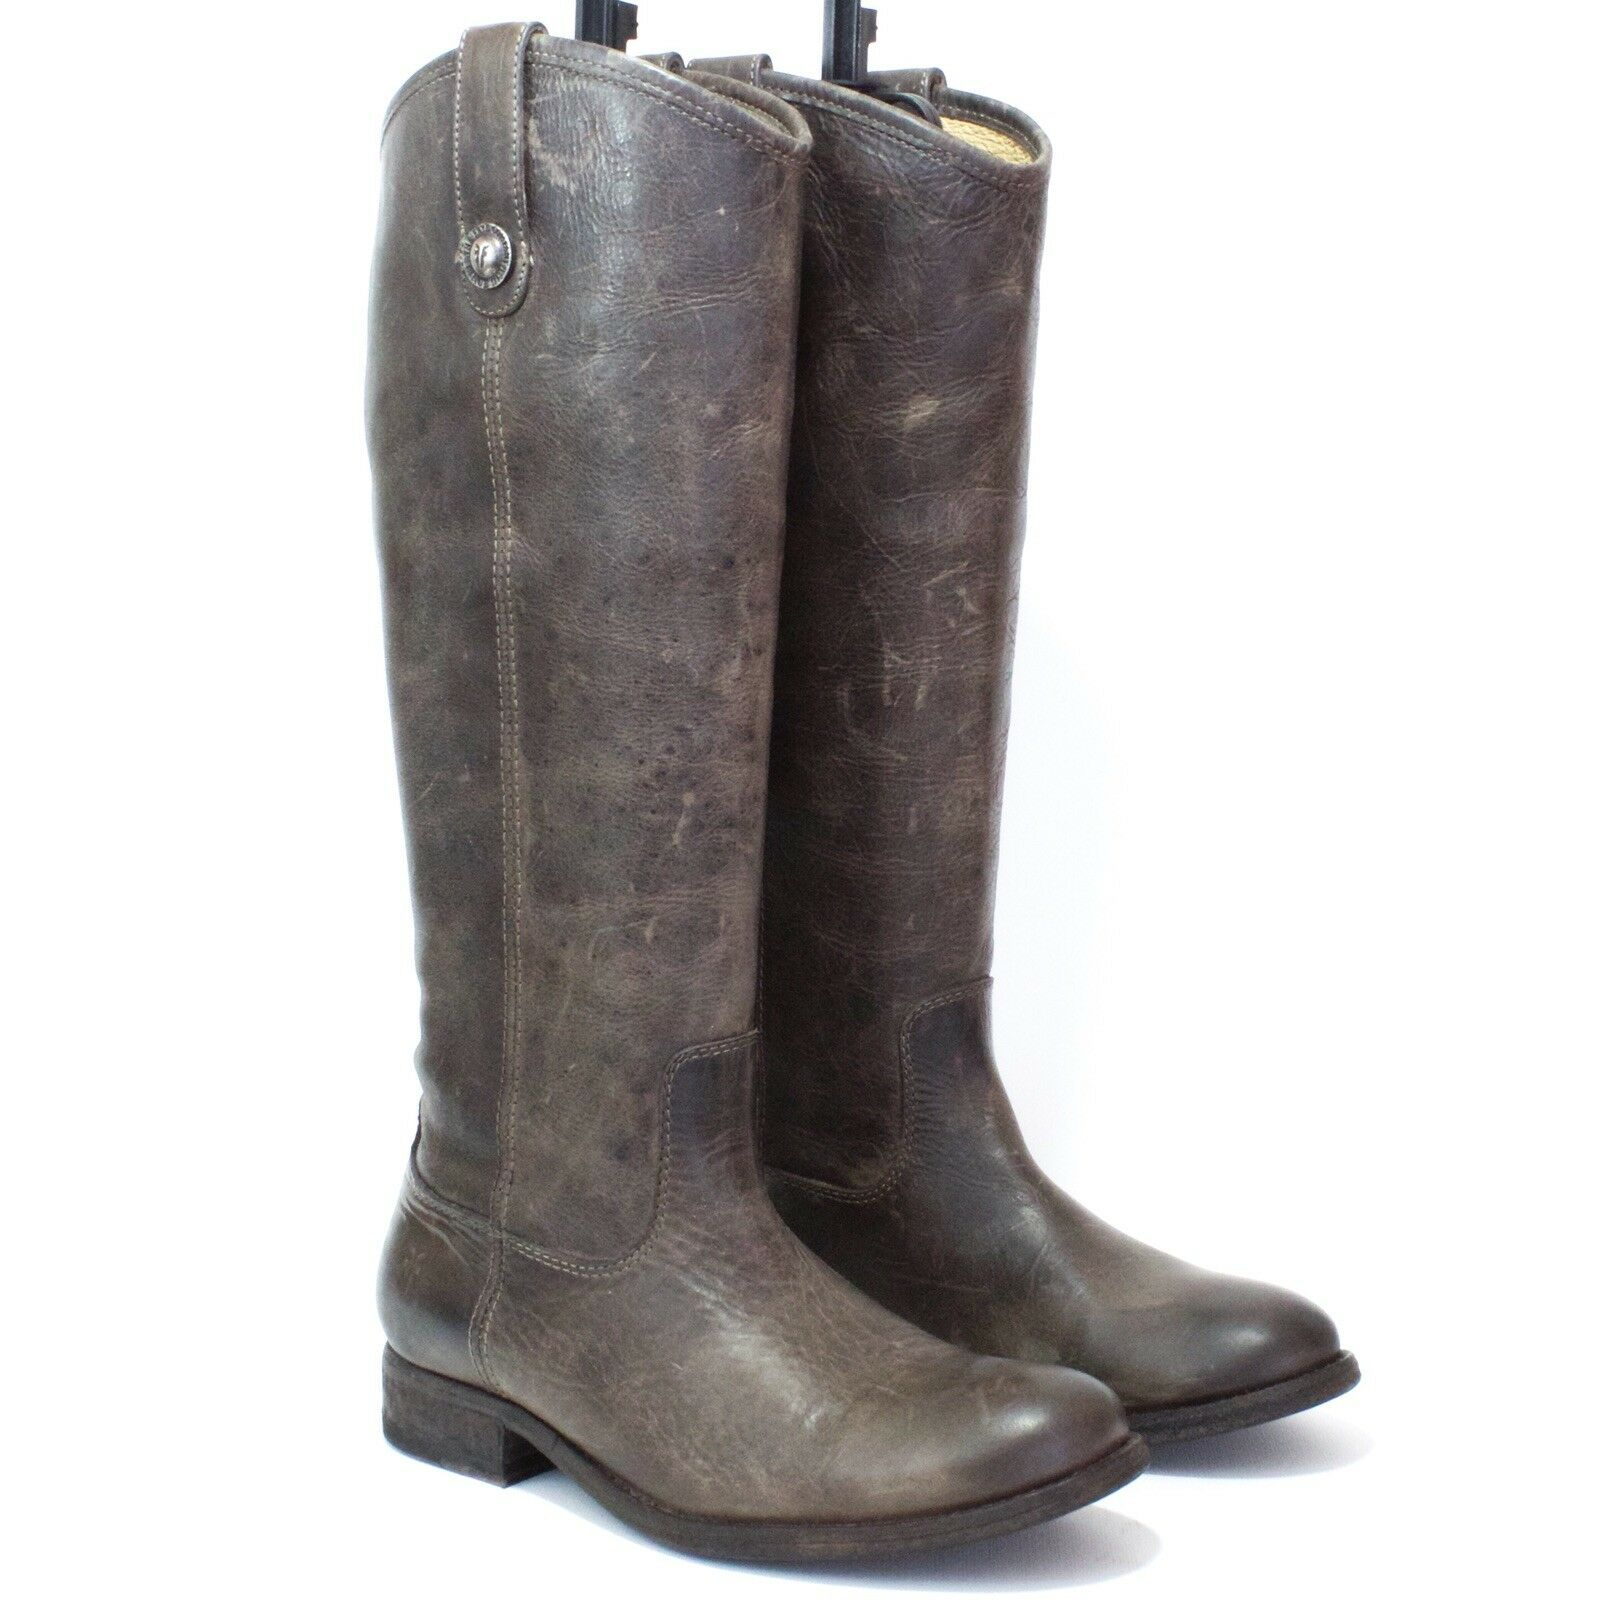 FRYE Riding Boots - Sz 6.5B - Melissa Button - Distressed Leather - Green Brown